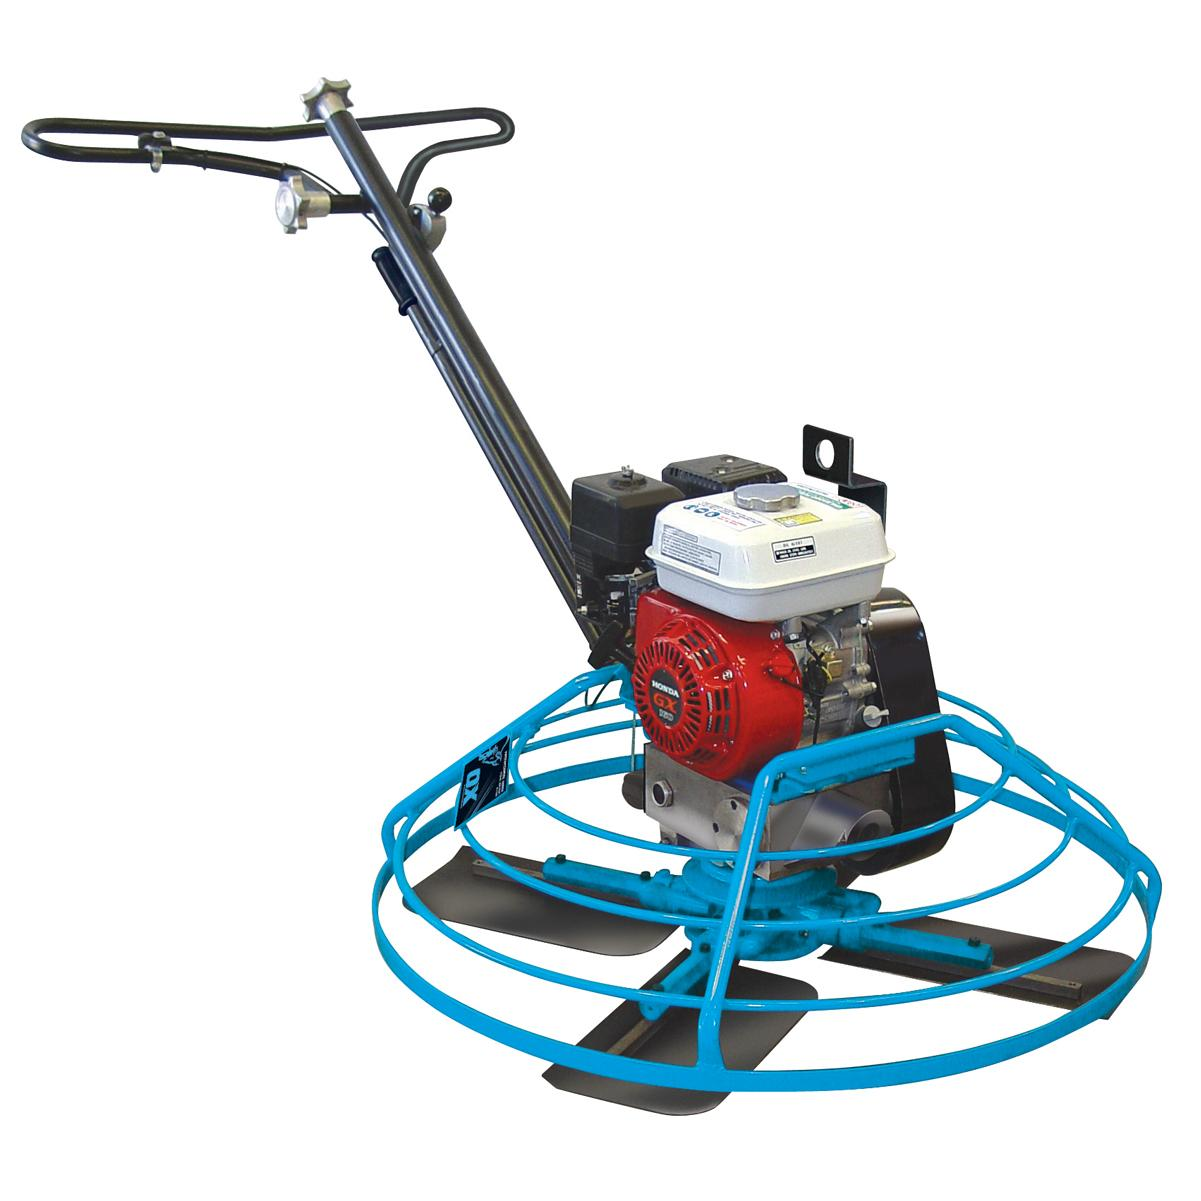 OX Prof 36 Trowelling Machine 9HP